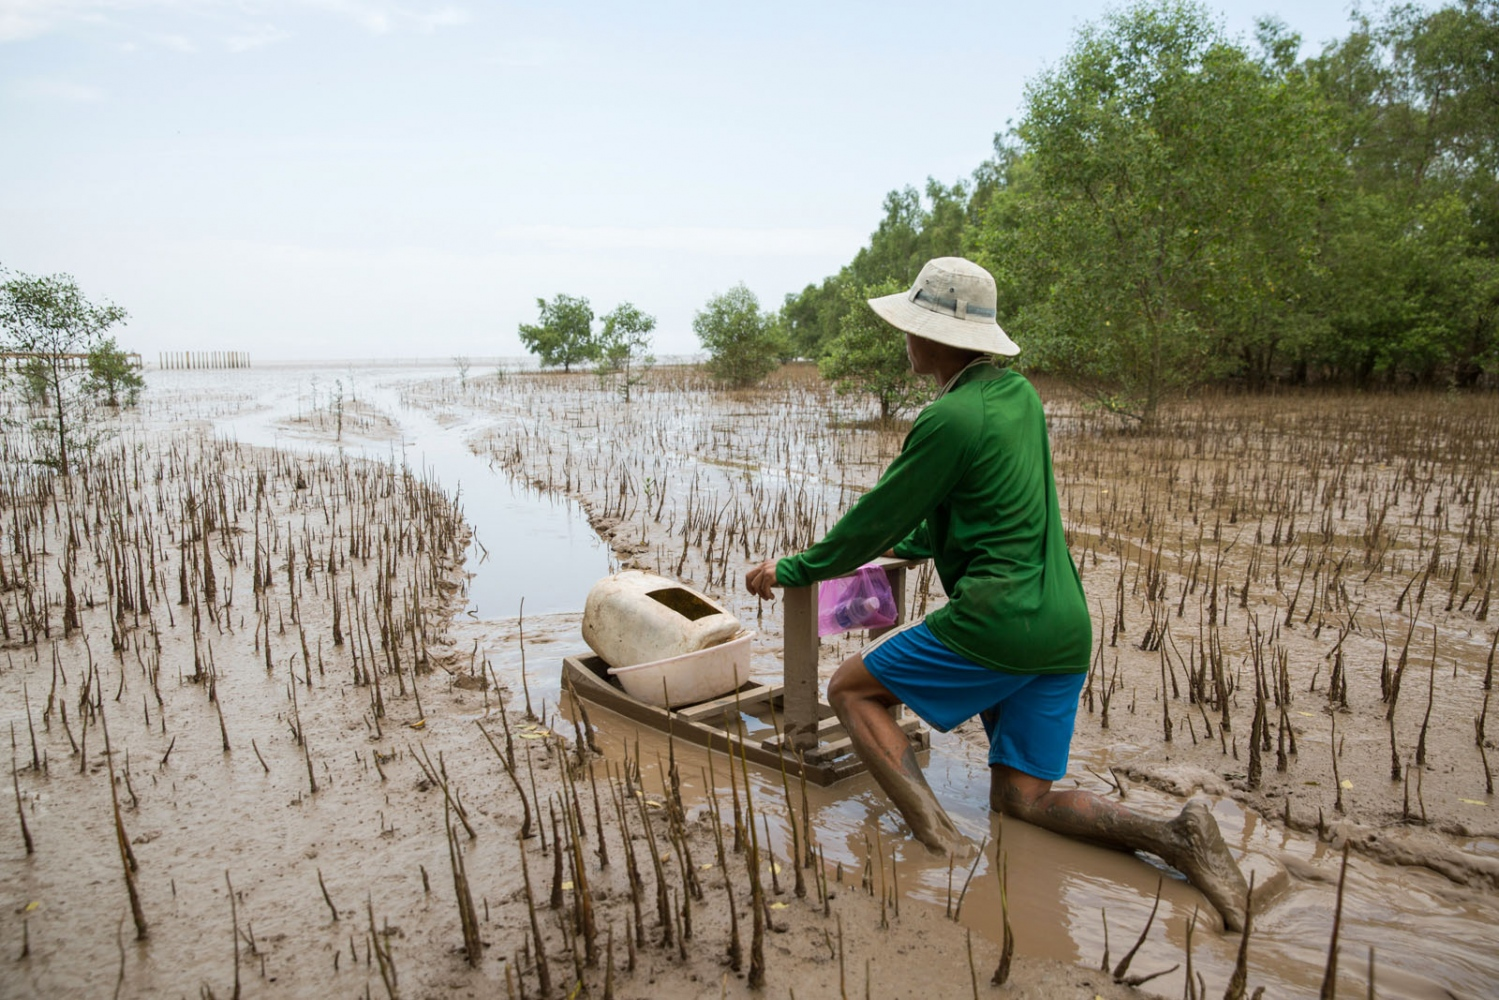 A man called Ly Tinh, 39, from the ethnic Khmer community uses a wooden 'sleigh', or 'mong' in local dialect, to glide over the deep mud remaining in this mangrove forest once the tide has retreated. The fishermen have used this method for over 60 years to reach their fishing nets out at sea.